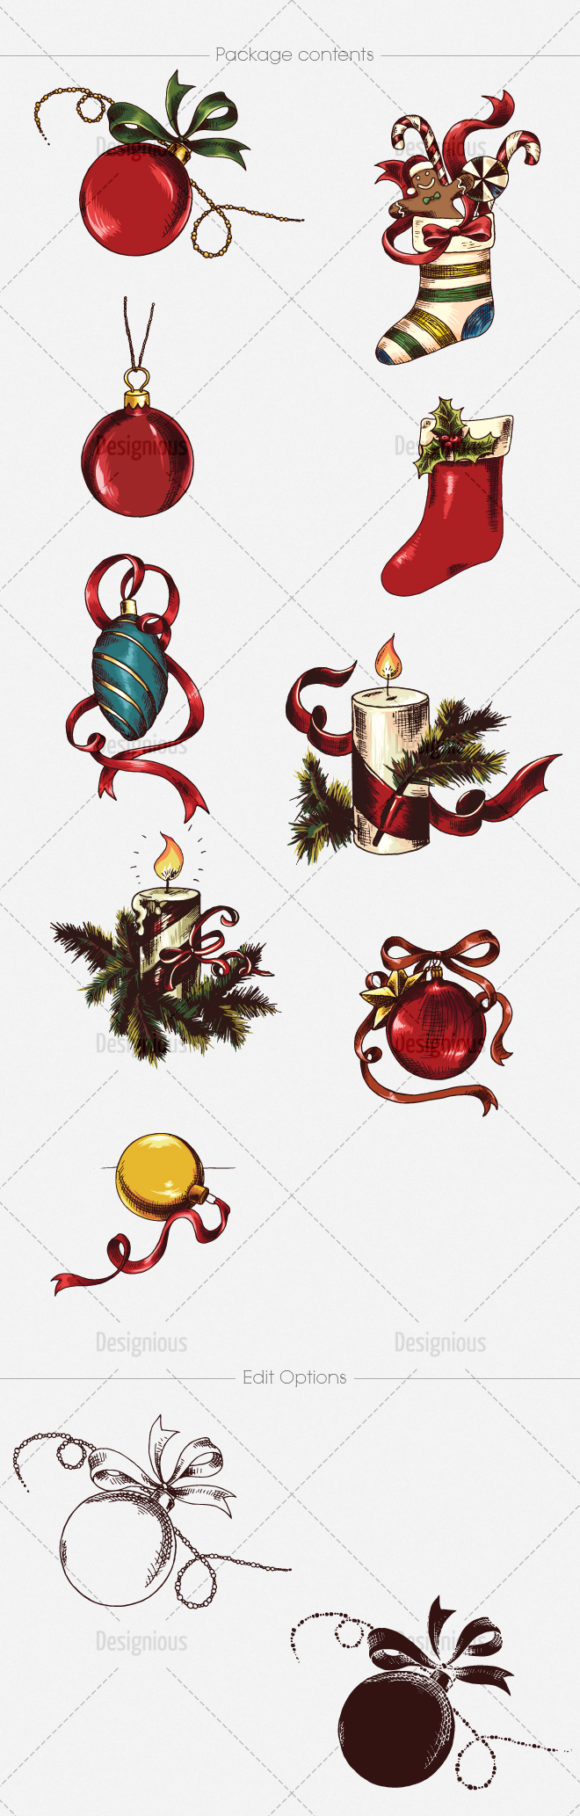 Christmas Vector Pack 19 products designious vector christmas 19 large